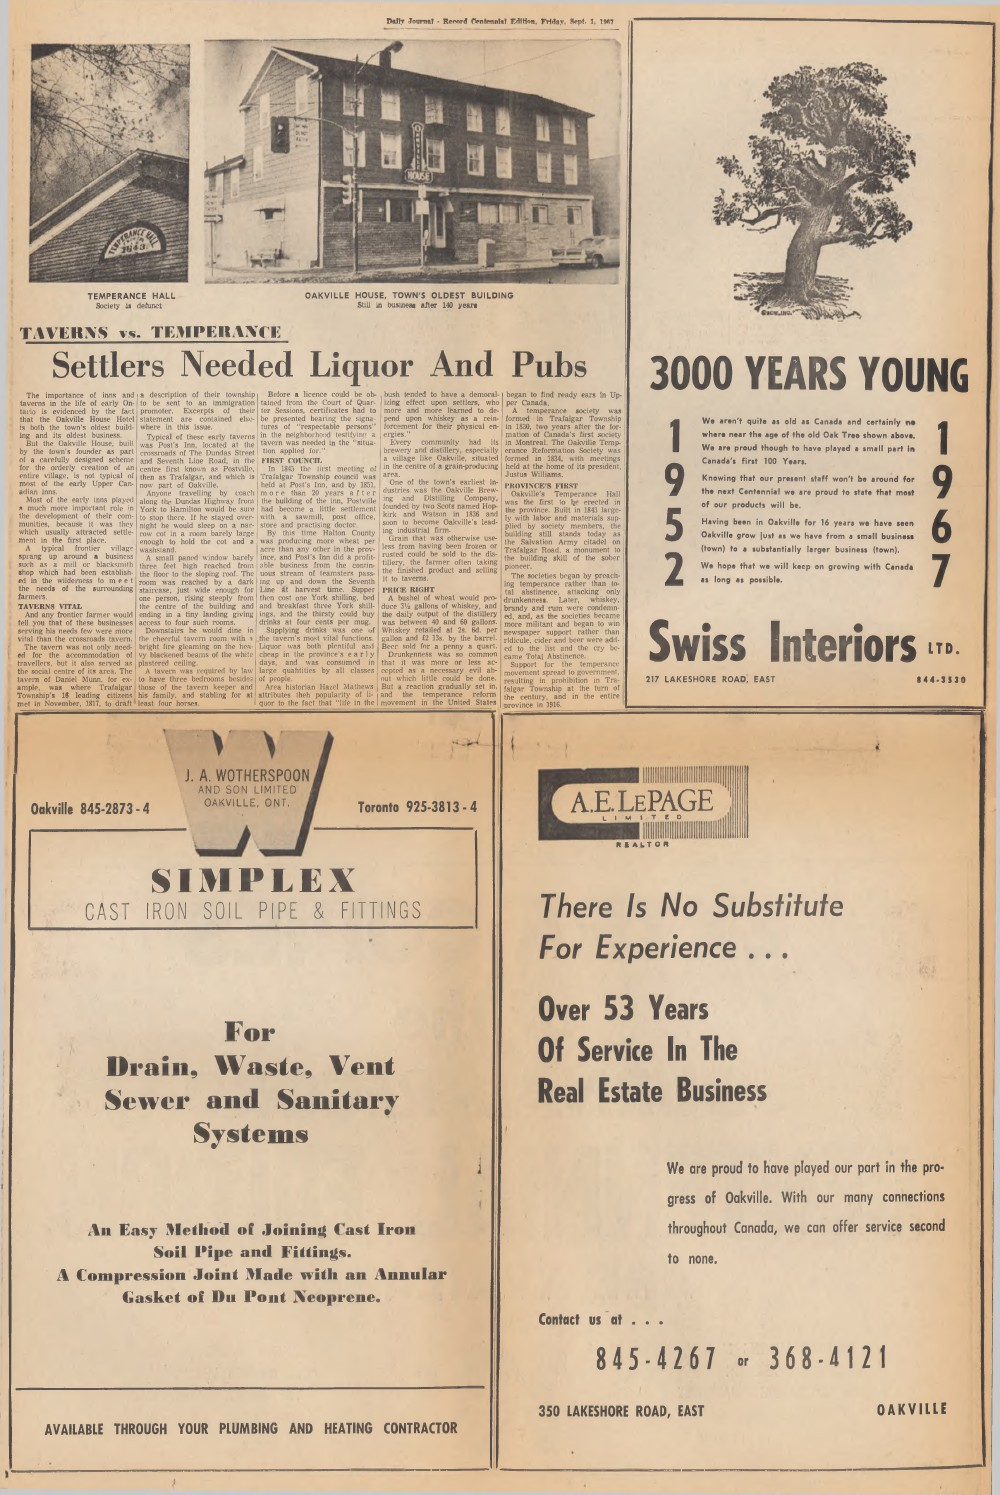 Daily Journal Record, 1 Sep 1967